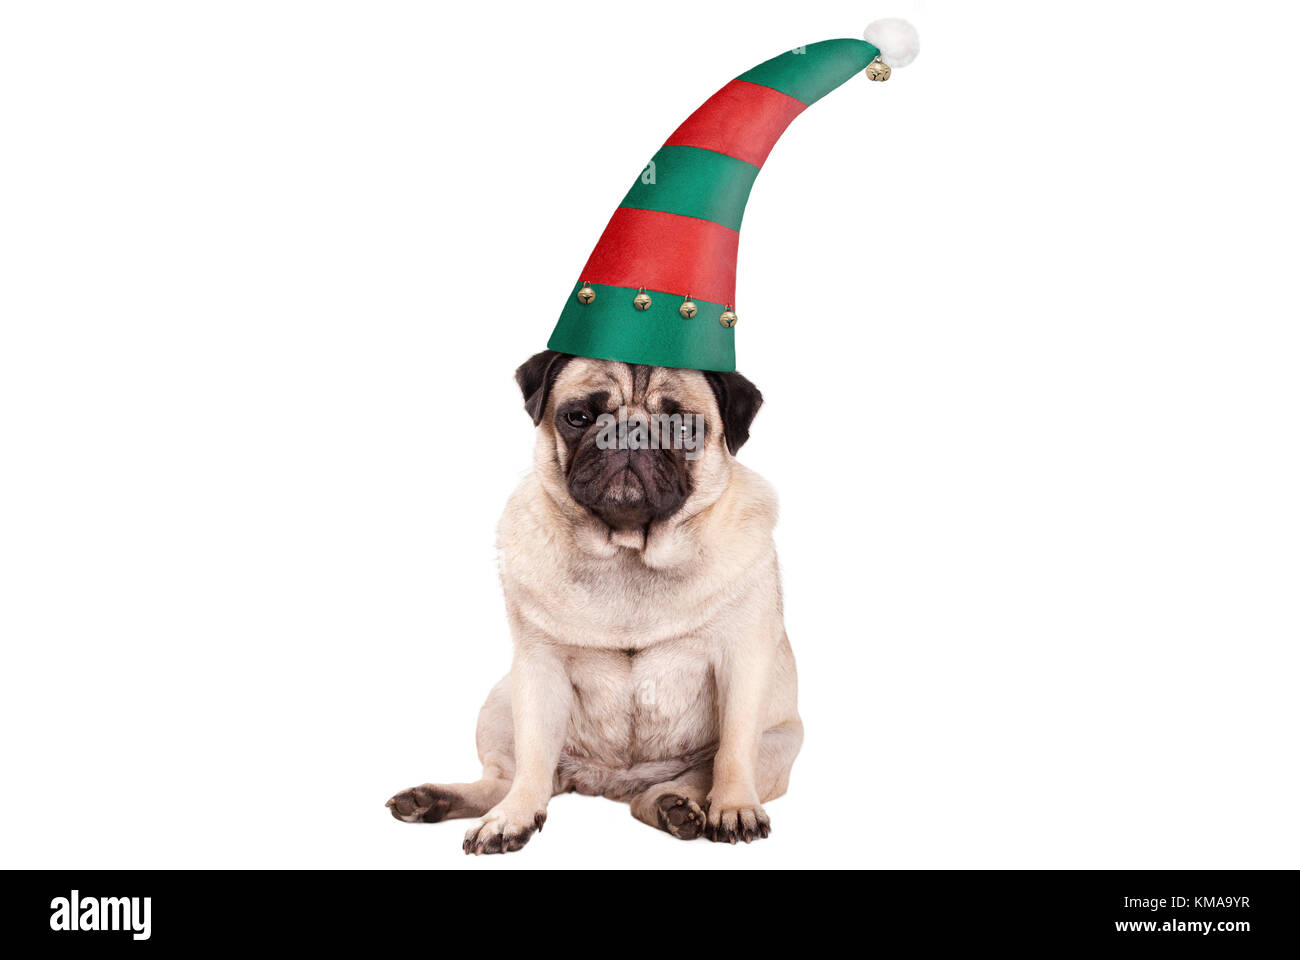 grumpy faced pug puppy dog with elf hat for Christmas, sitting down, isolated on white background Stock Photo